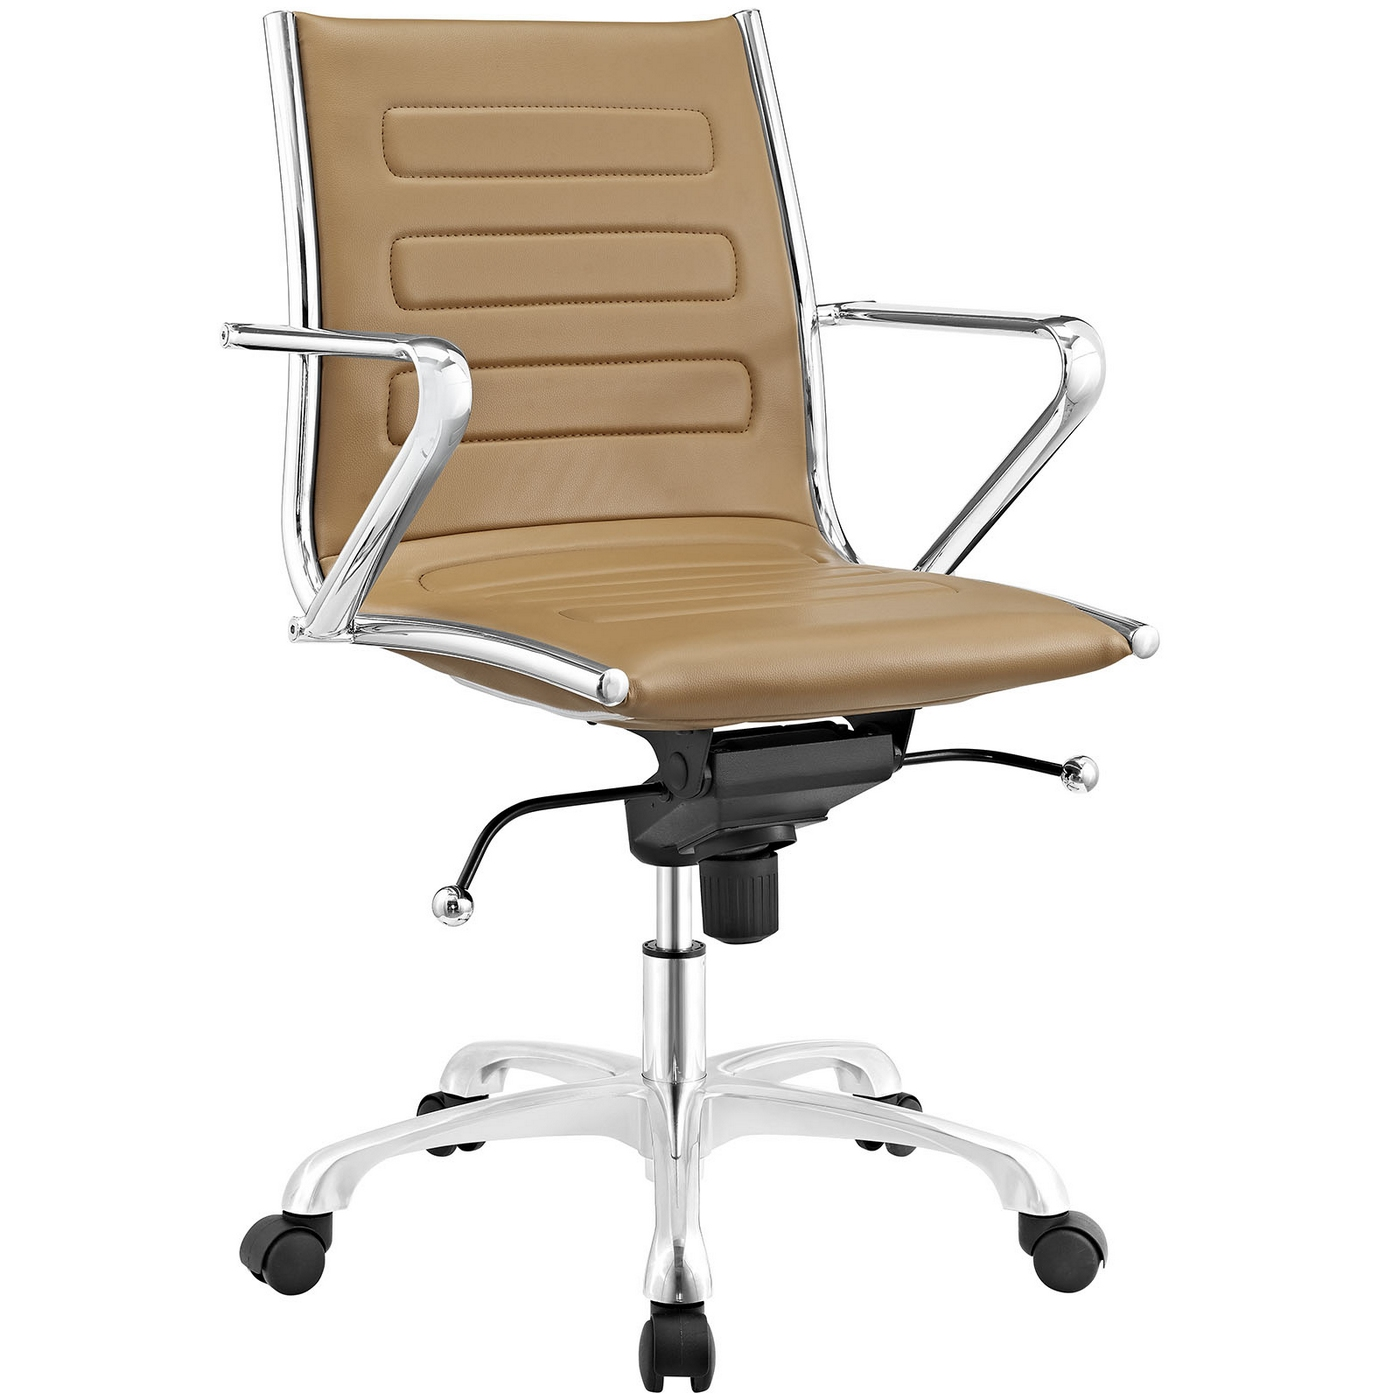 Ascend Modern Padded Vinyl Mid Back Office Chair W/tilt